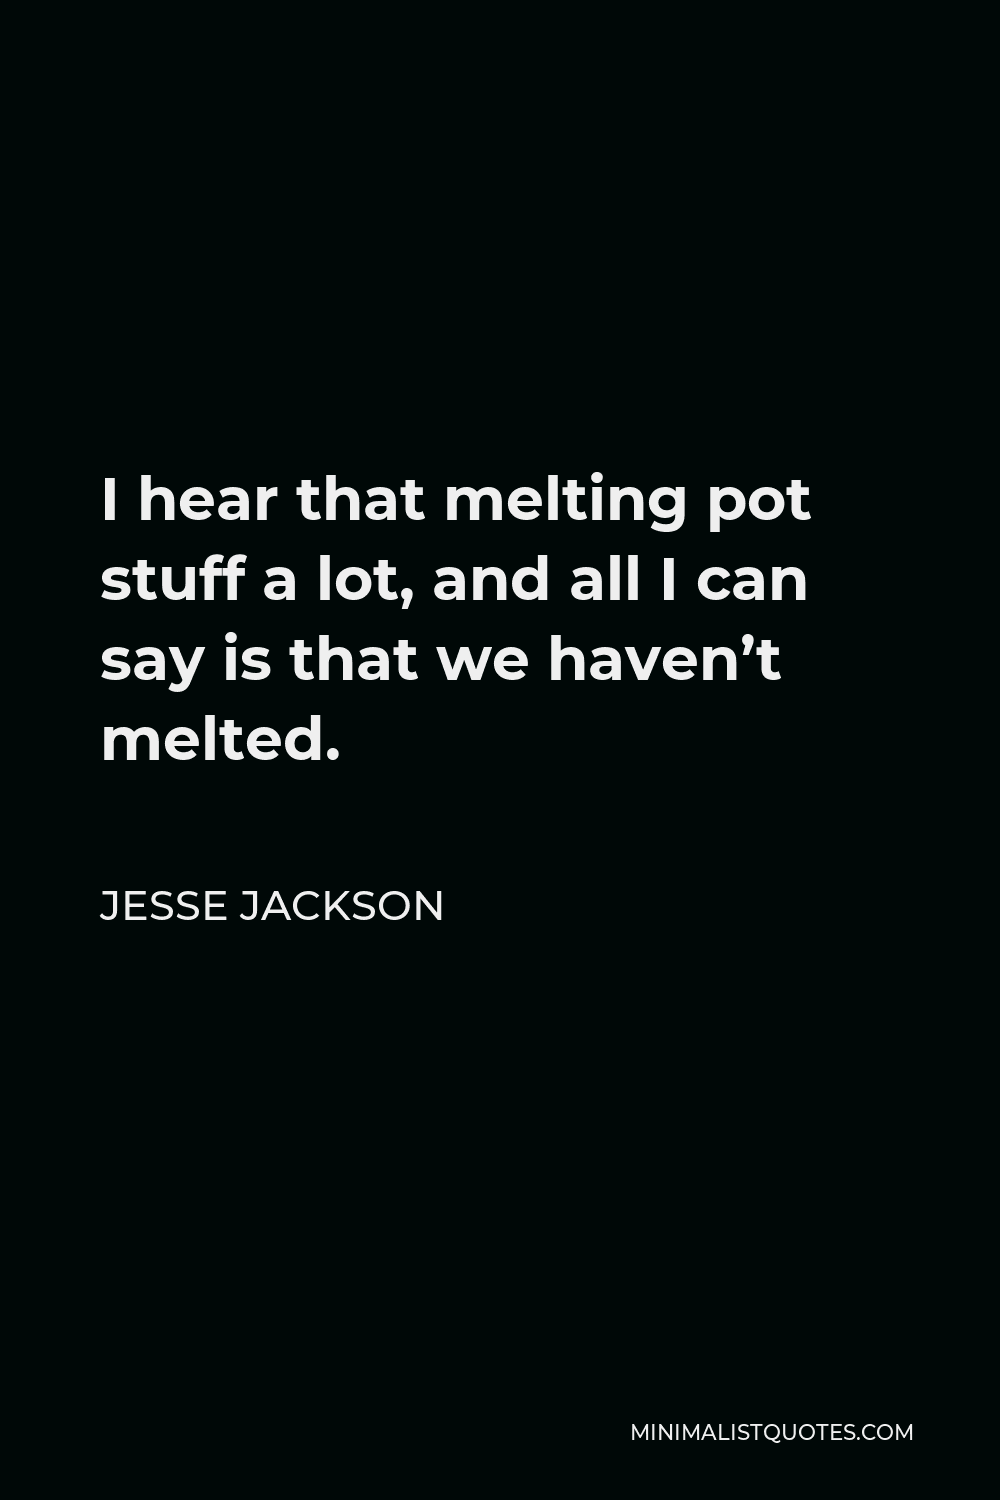 Jesse Jackson Quote - I hear that melting pot stuff a lot, and all I can say is that we haven't melted.